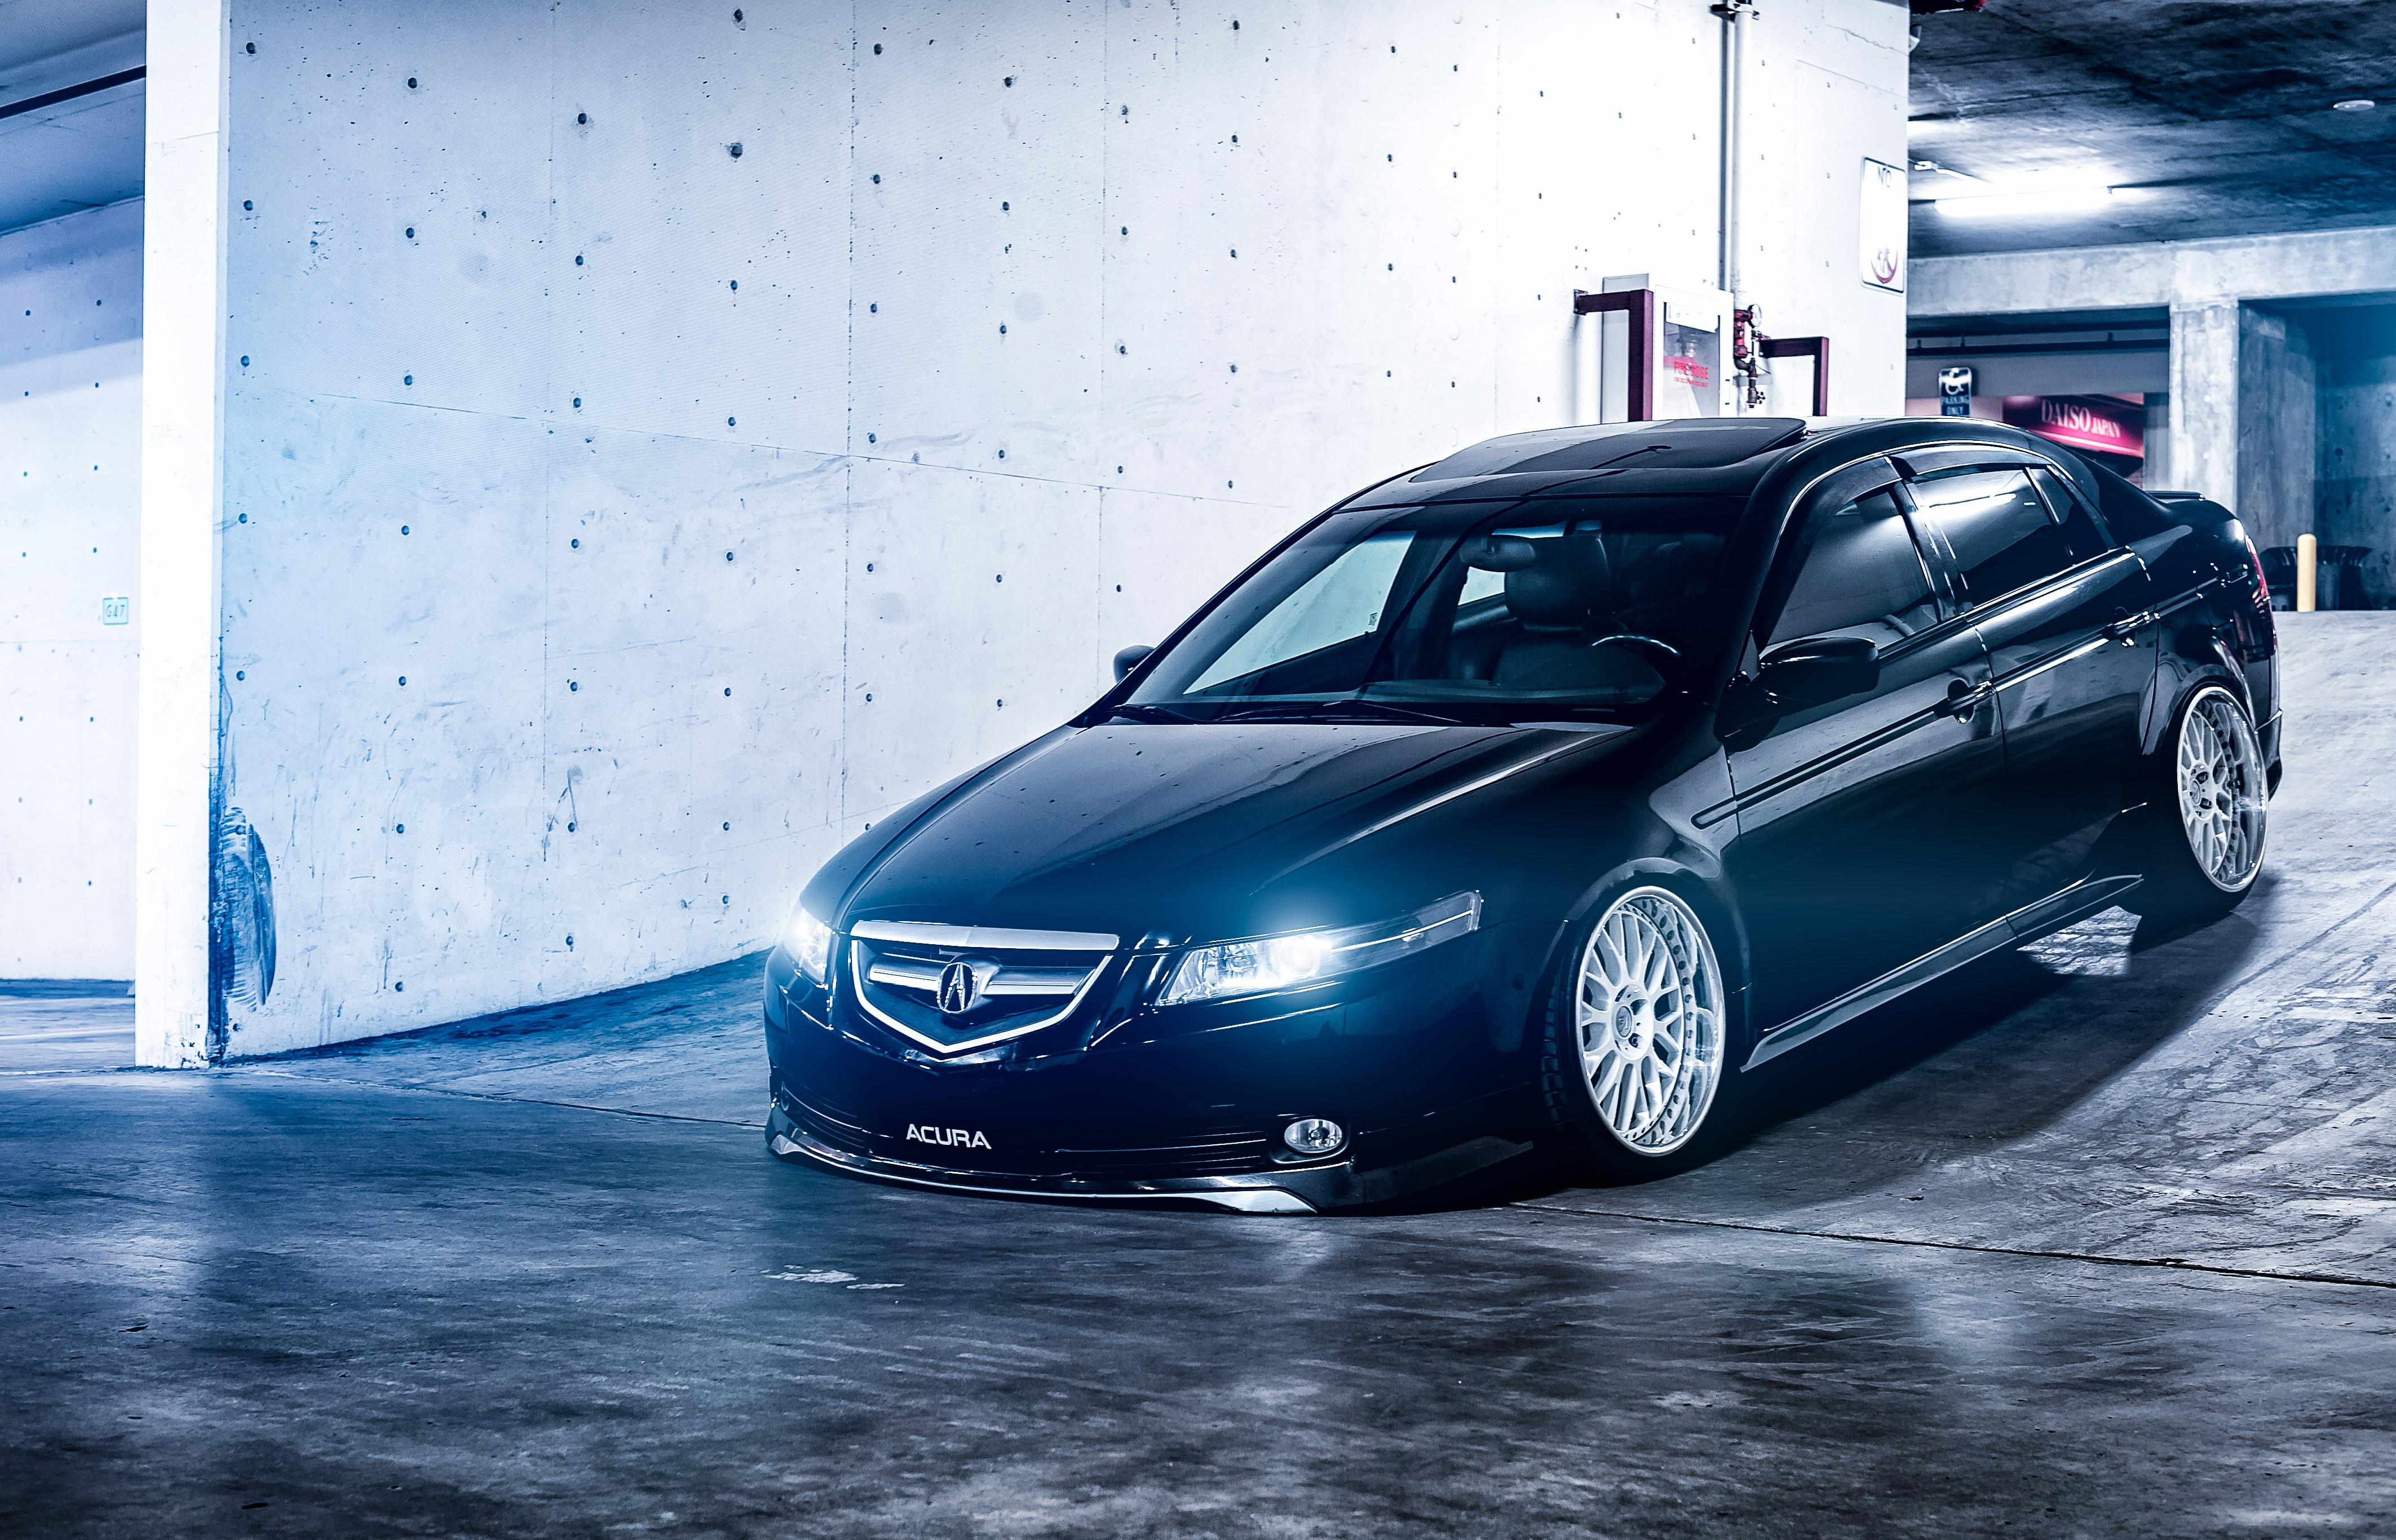 4250x2732 - Acura TSX Wallpapers 33